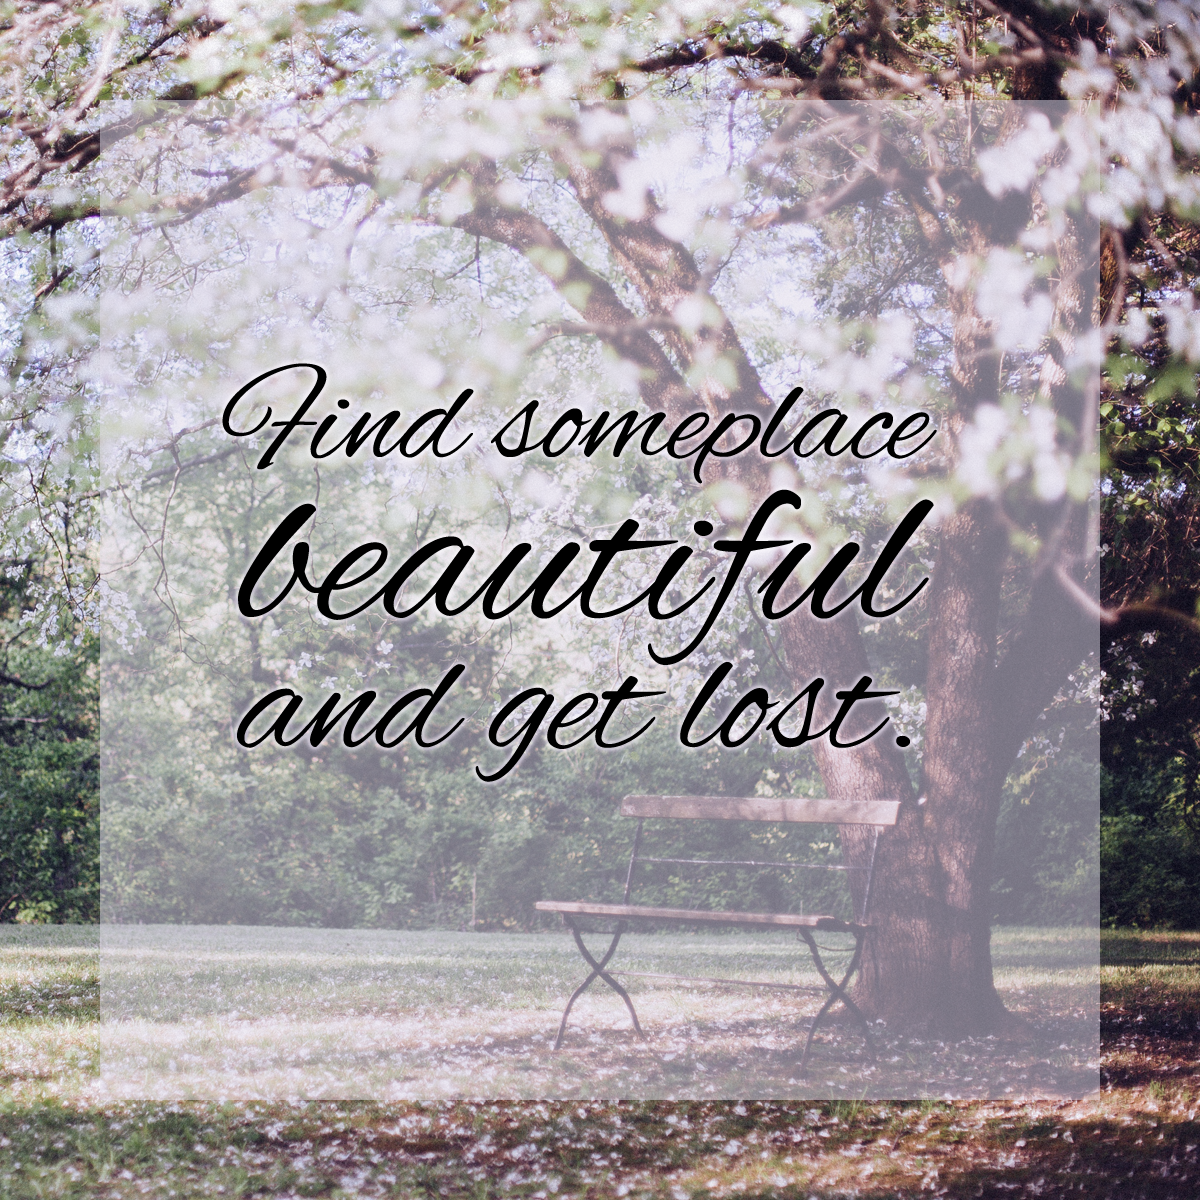 There is beauty all around us. #quote #wordstoliveby #